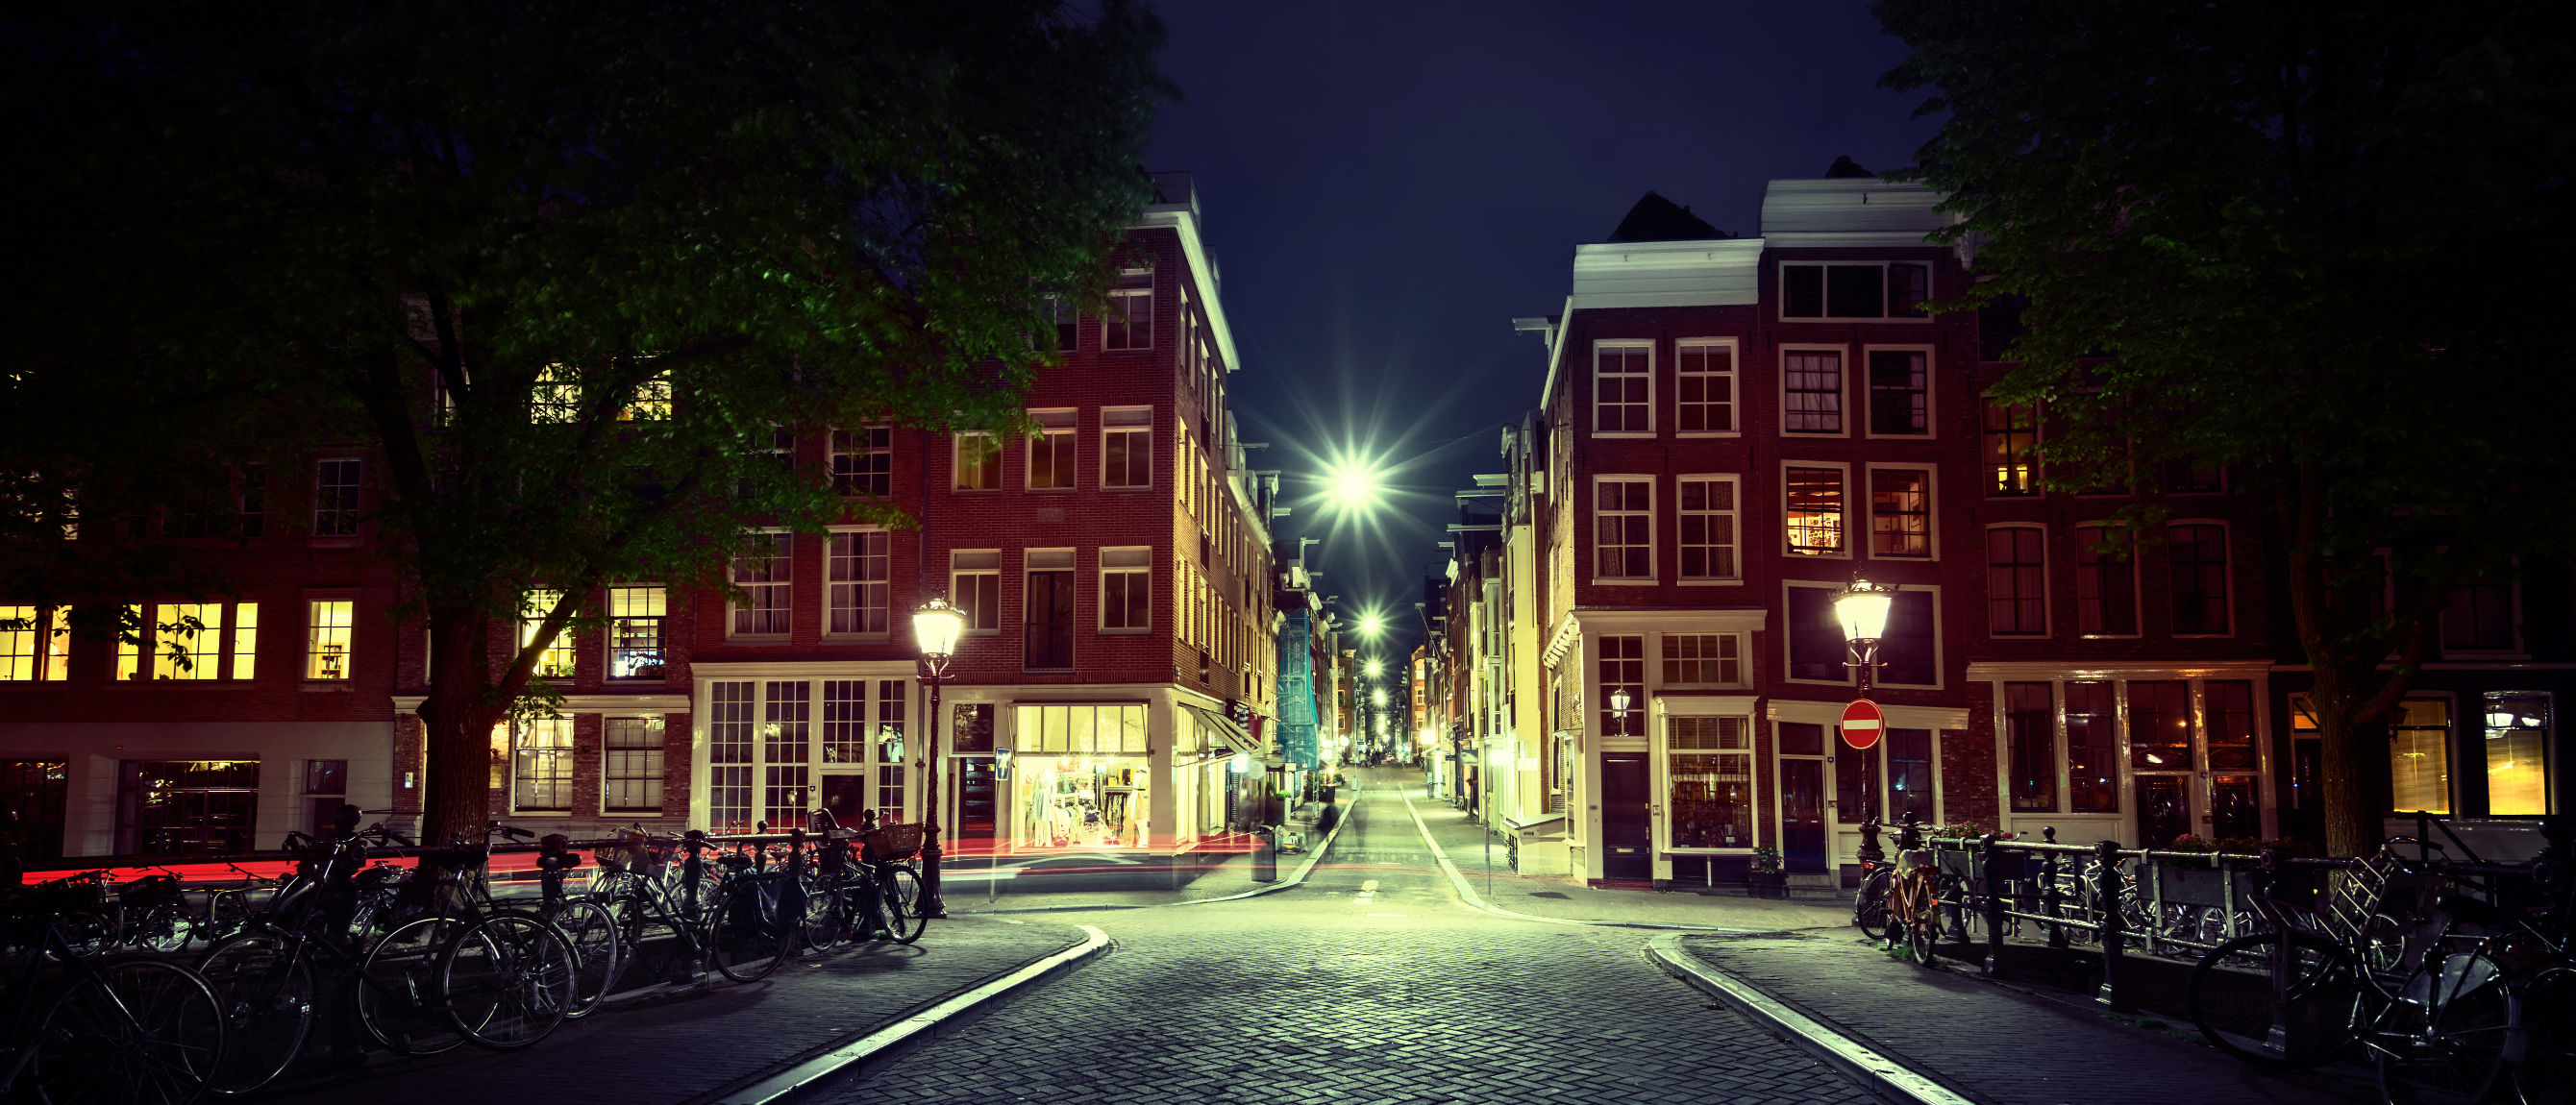 ra guide to amsterdam netherlands